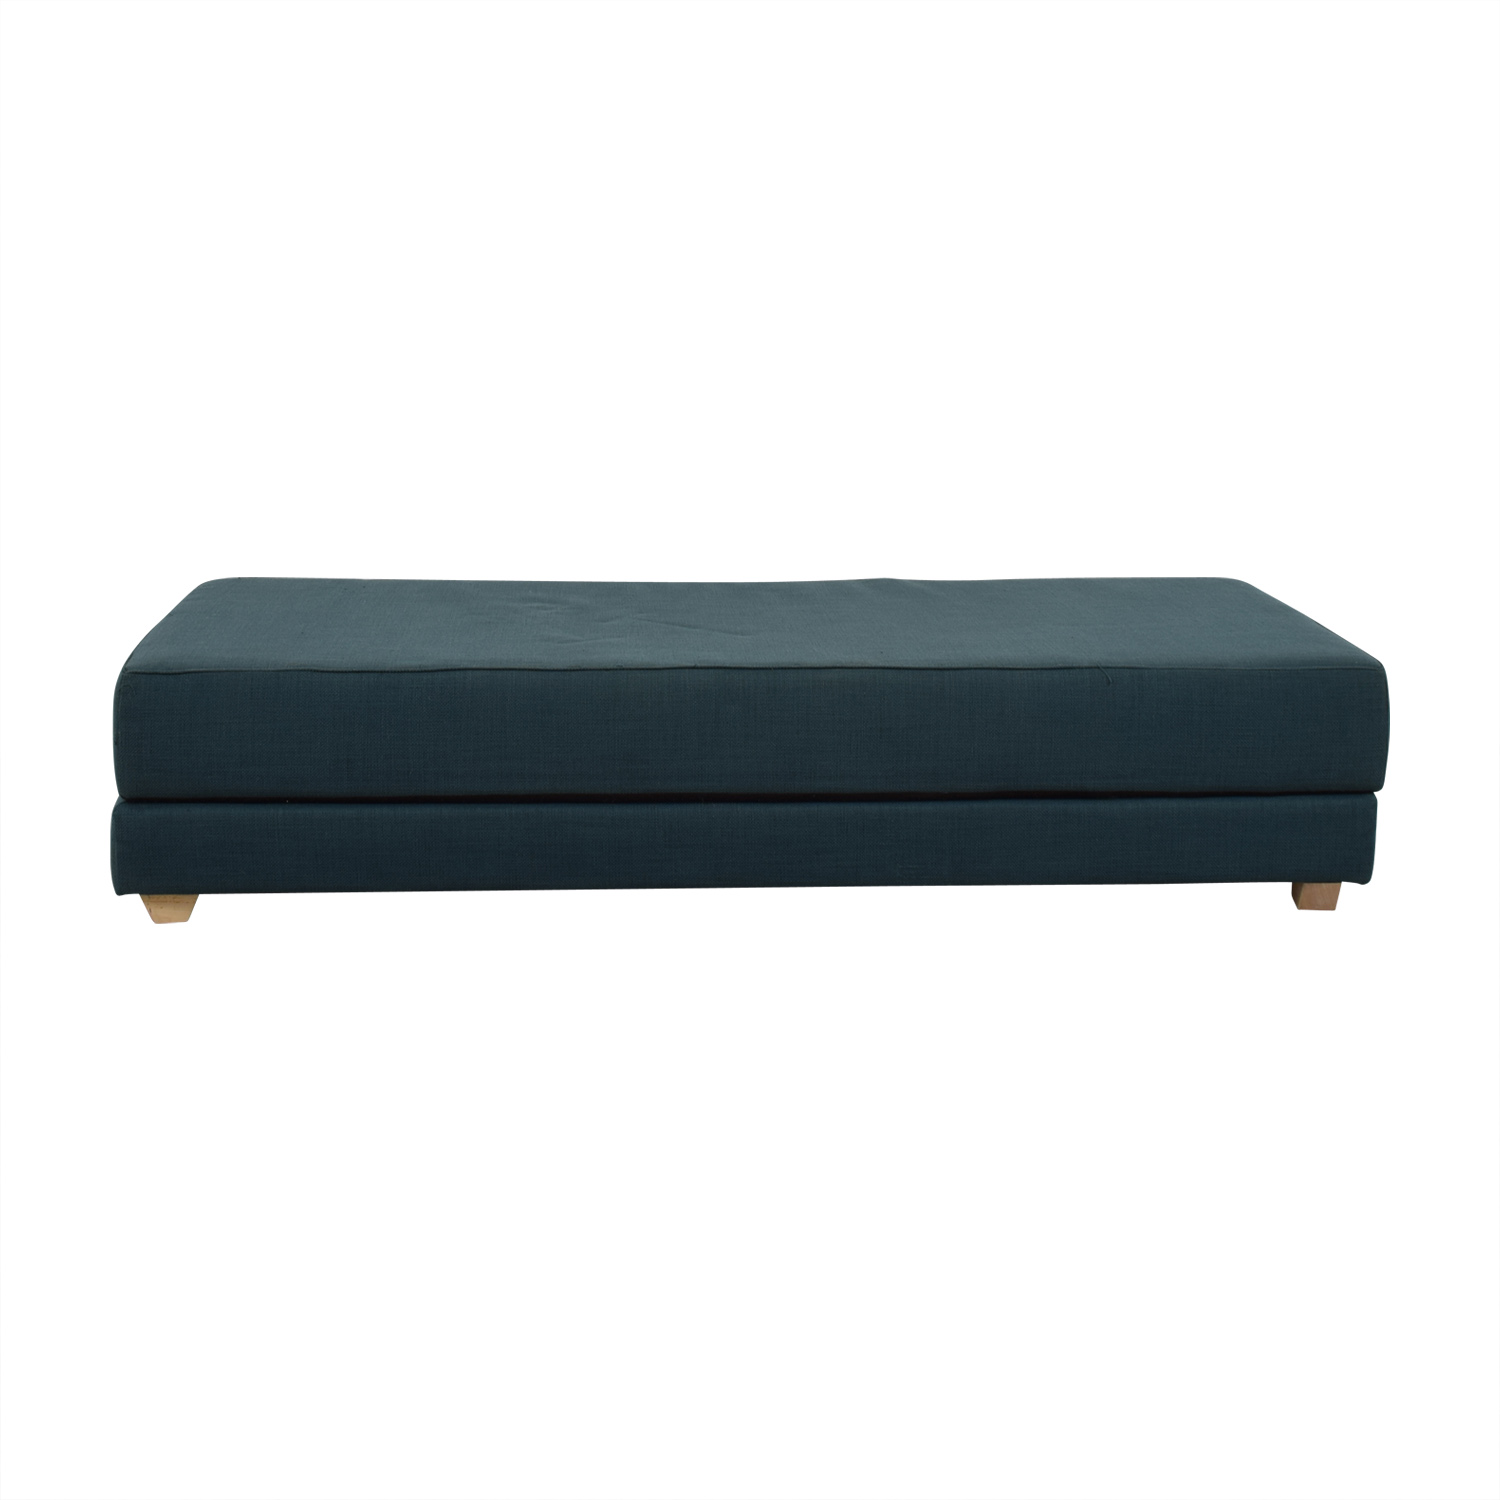 buy CB2 Lumi Blue Day Bed CB2 Classic Sofas